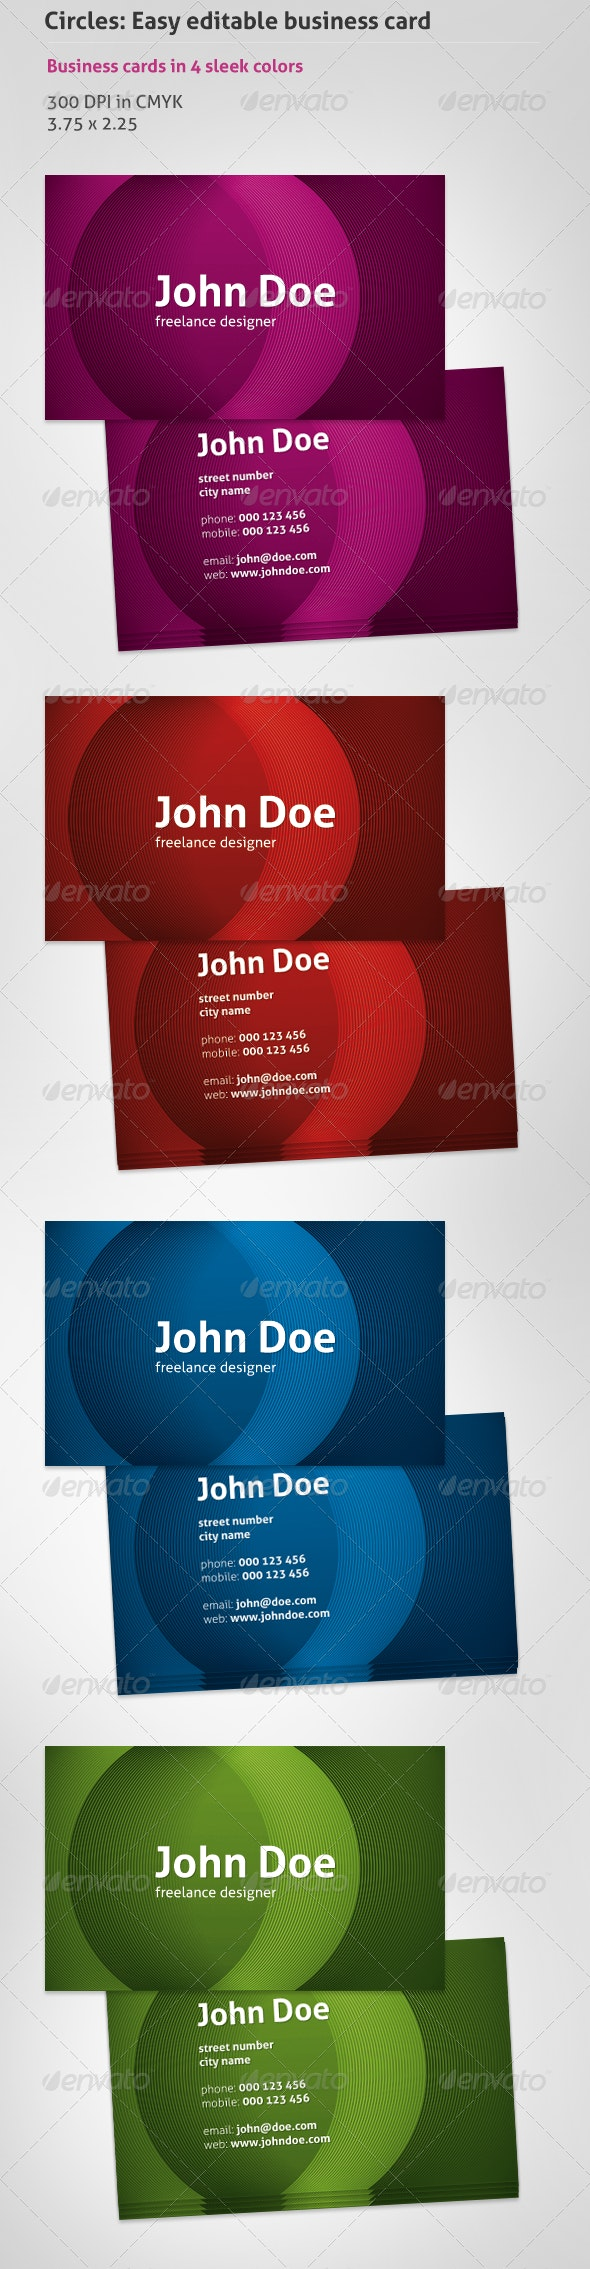 Circles: Business Cards Template - Creative Business Cards